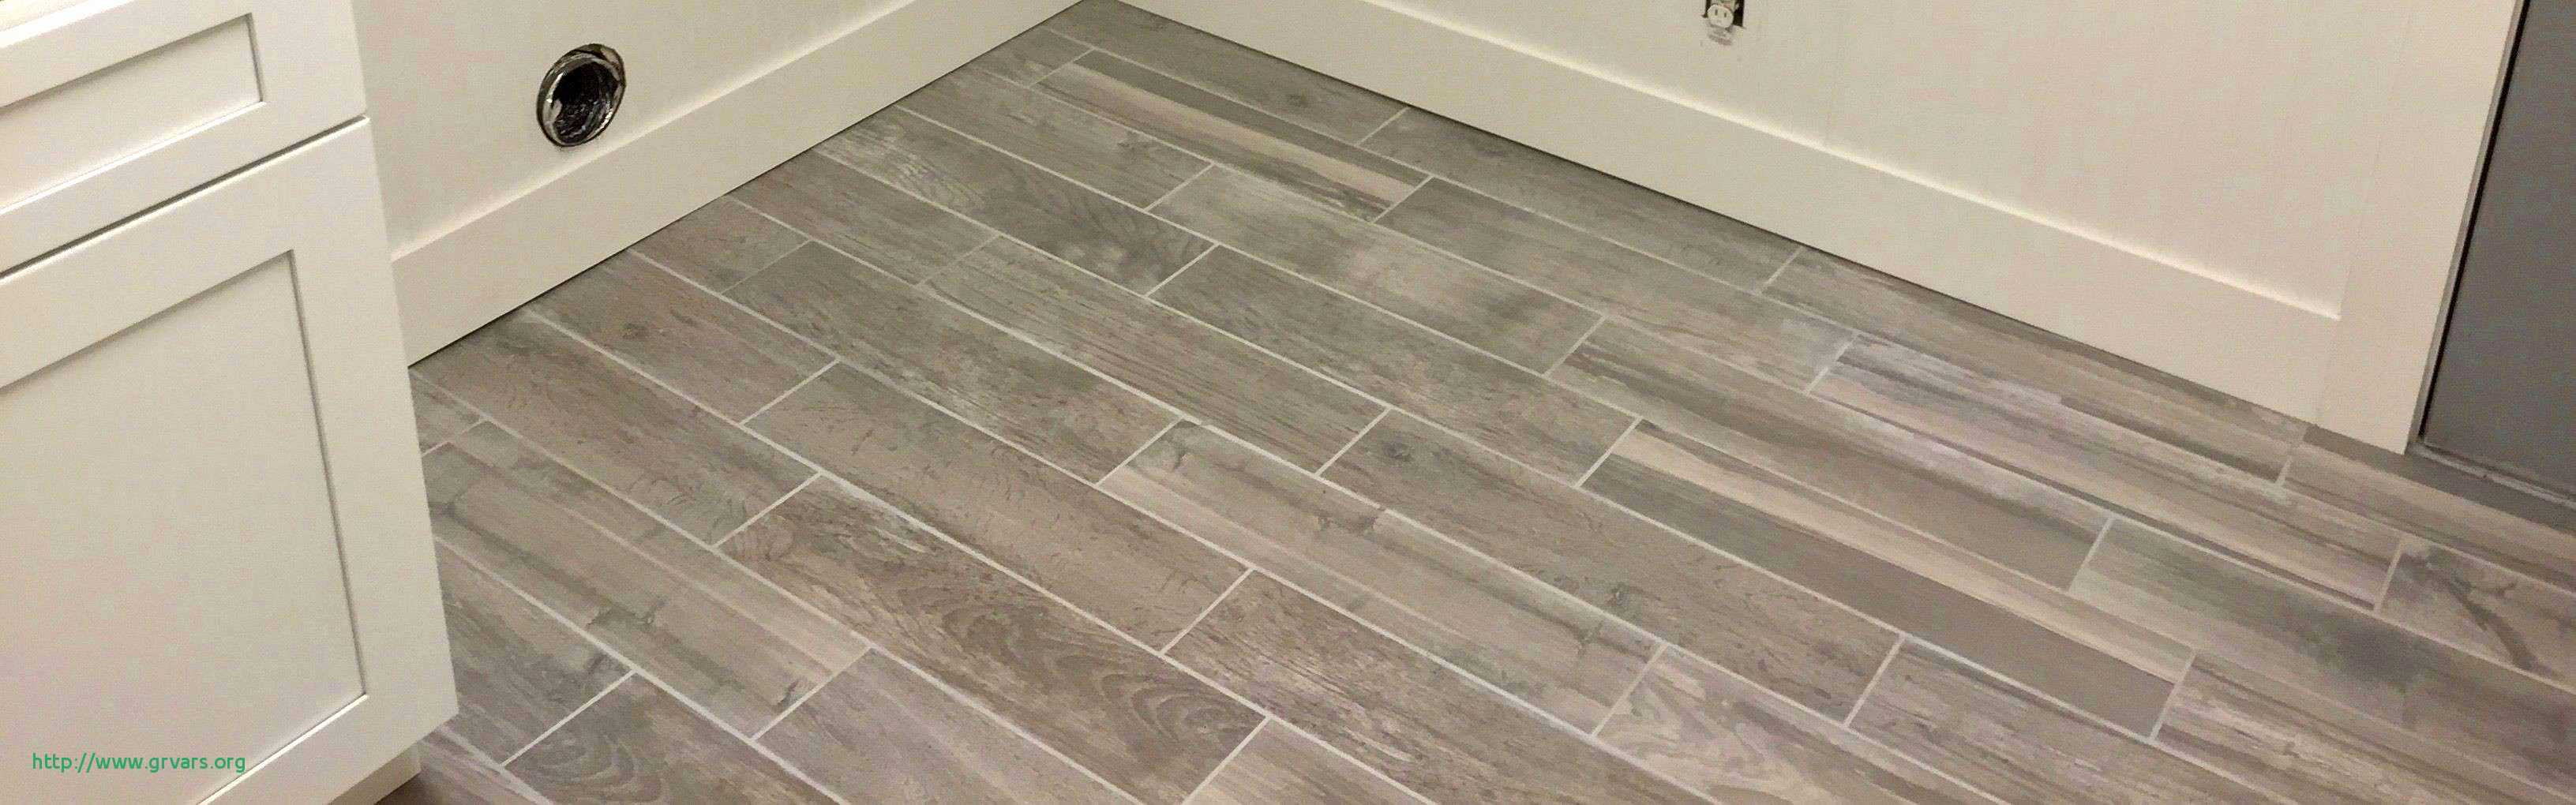 refinishing hardwood floors vs replacing cost of 22 charmant cost to redo wood floors ideas blog pertaining to refinish parquet without cost to redo wood floors inspirant hardwood floor installation how much would it cost to install